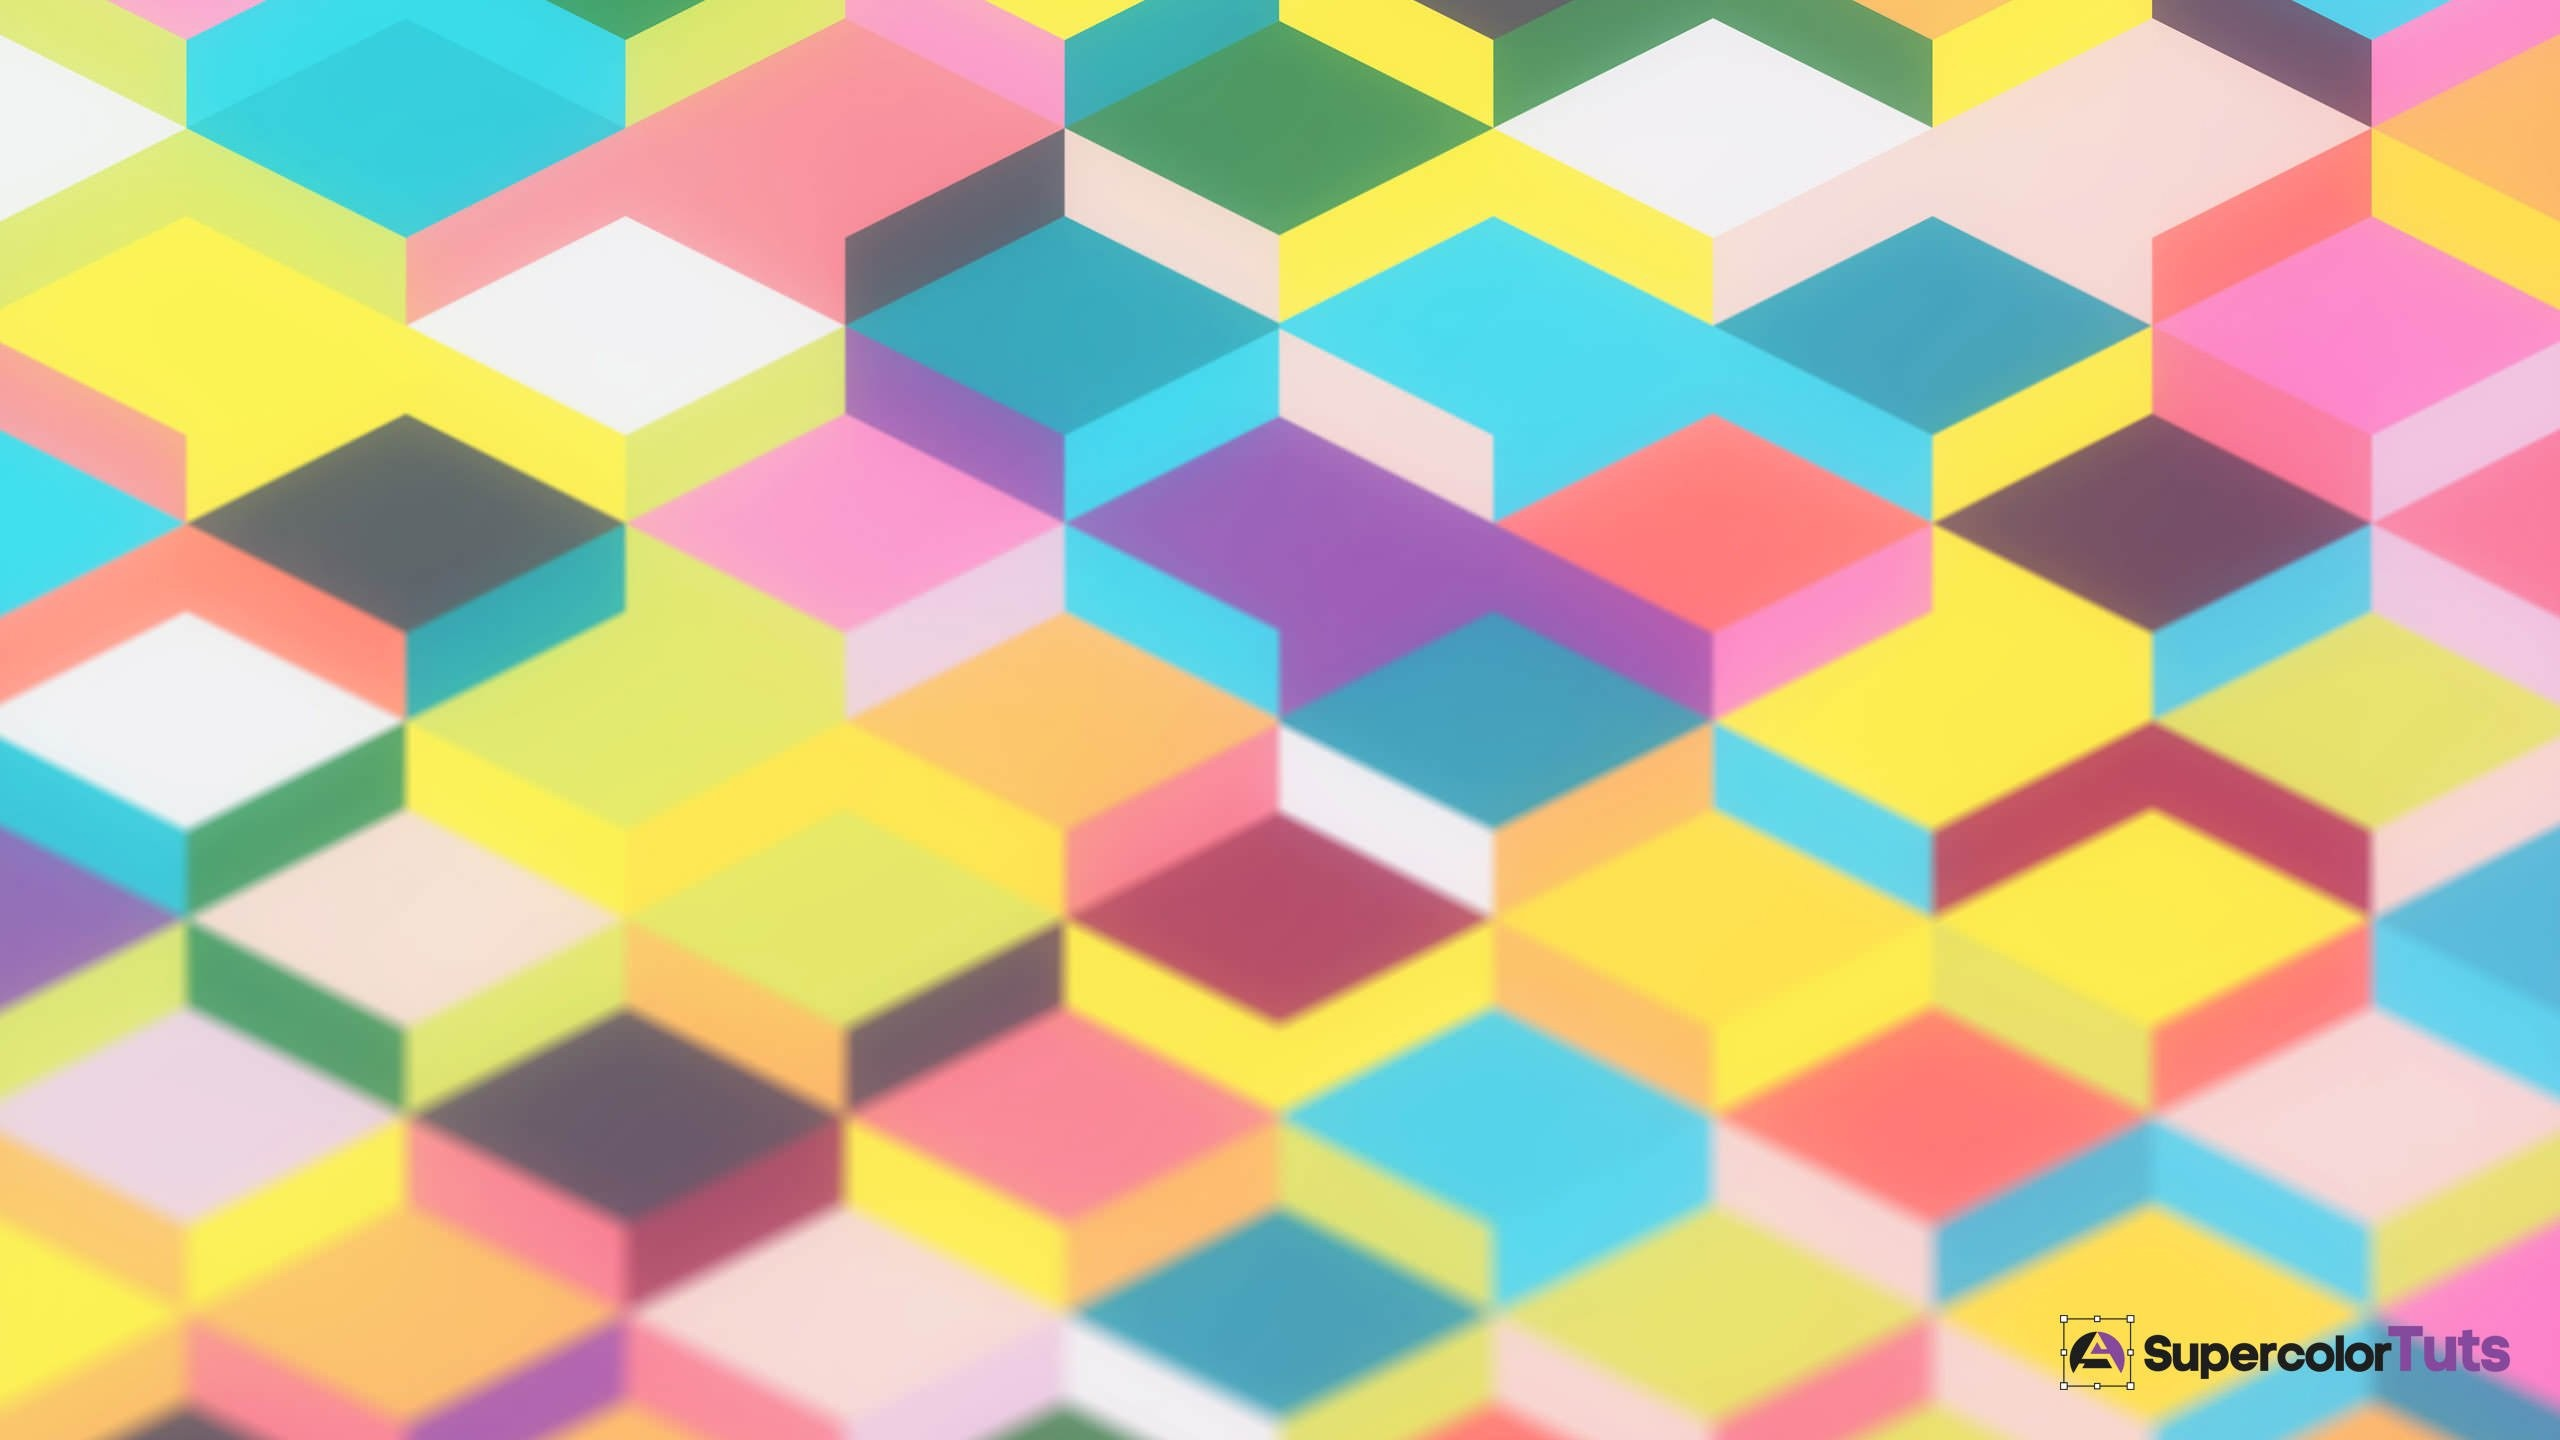 Free Colorful Geometric Wallpaper: Geometric Shapes Wallpaper (68+ Images